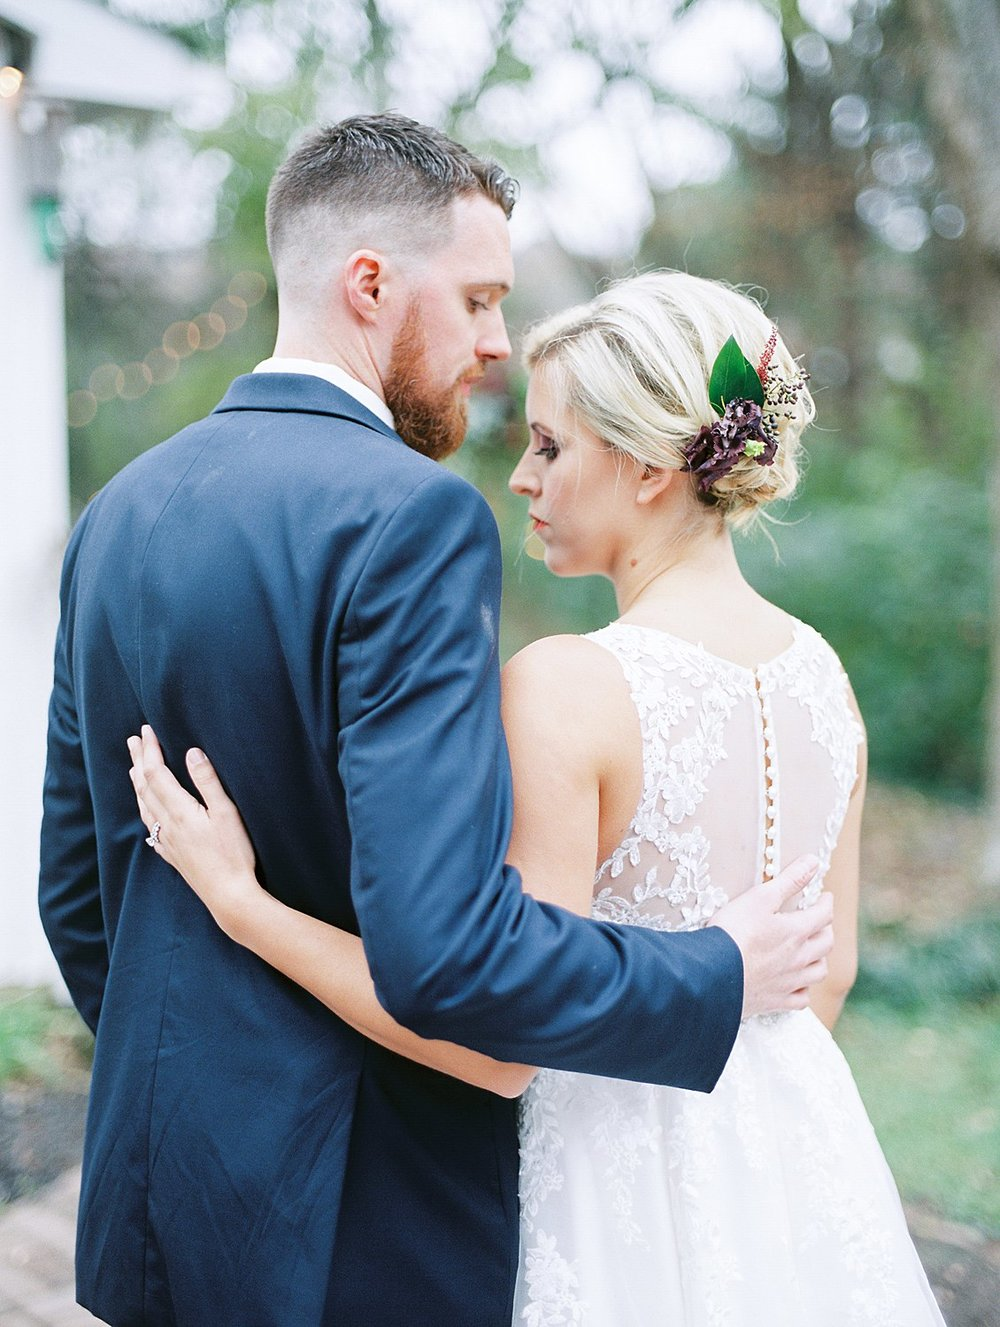 Knoxville Wedding Inspiration | Juicebeats Photography